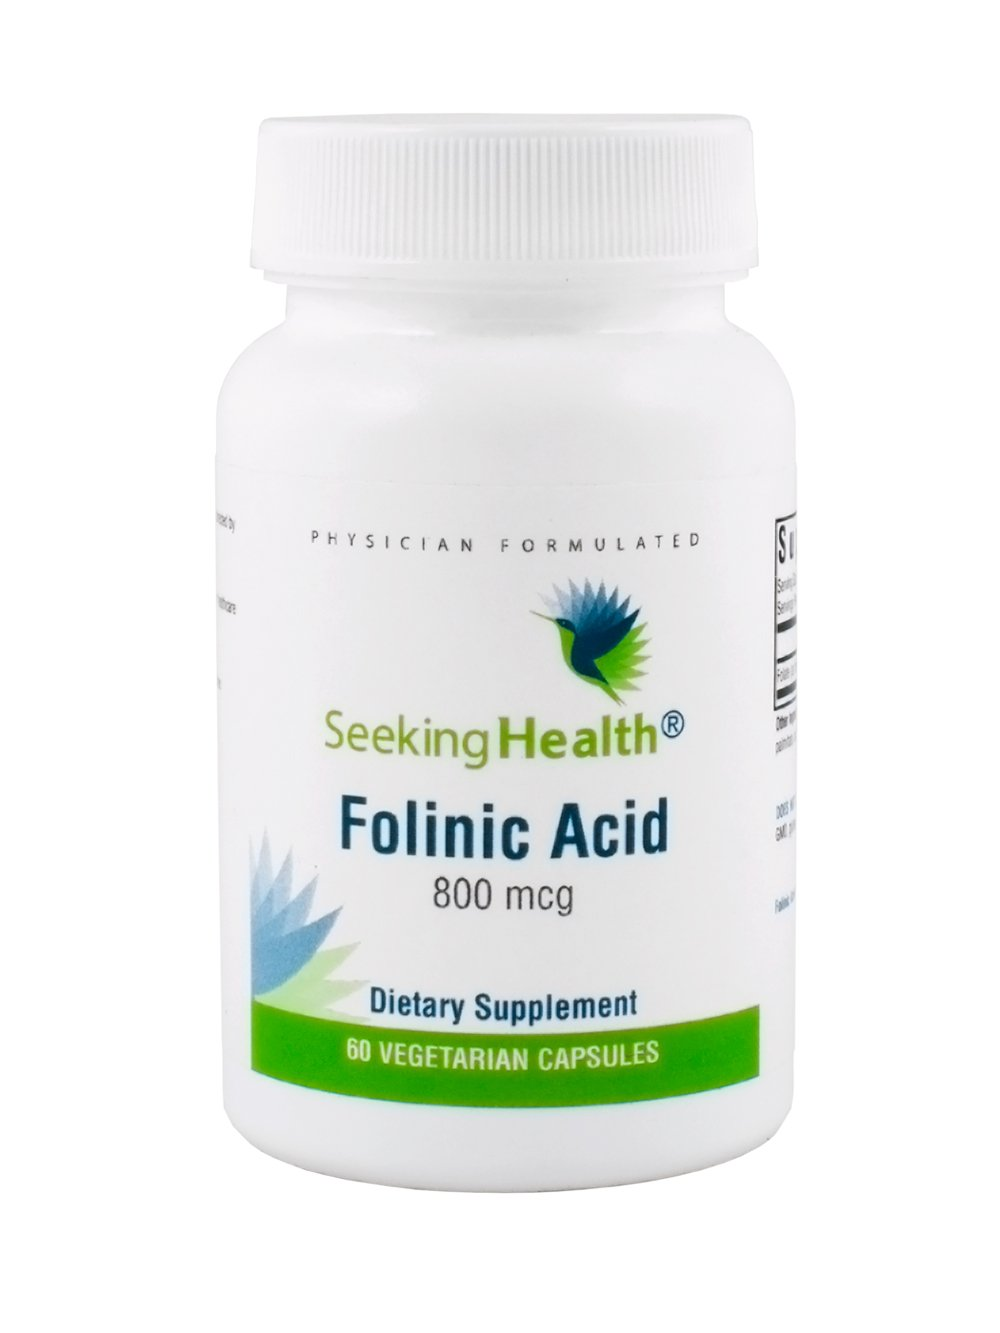 Folinic Acid | 60 Vegetarian Capsules | Provides 800 mcg DFE Bioavailable Folinic Acid | Physician Formulated | Seeking Health